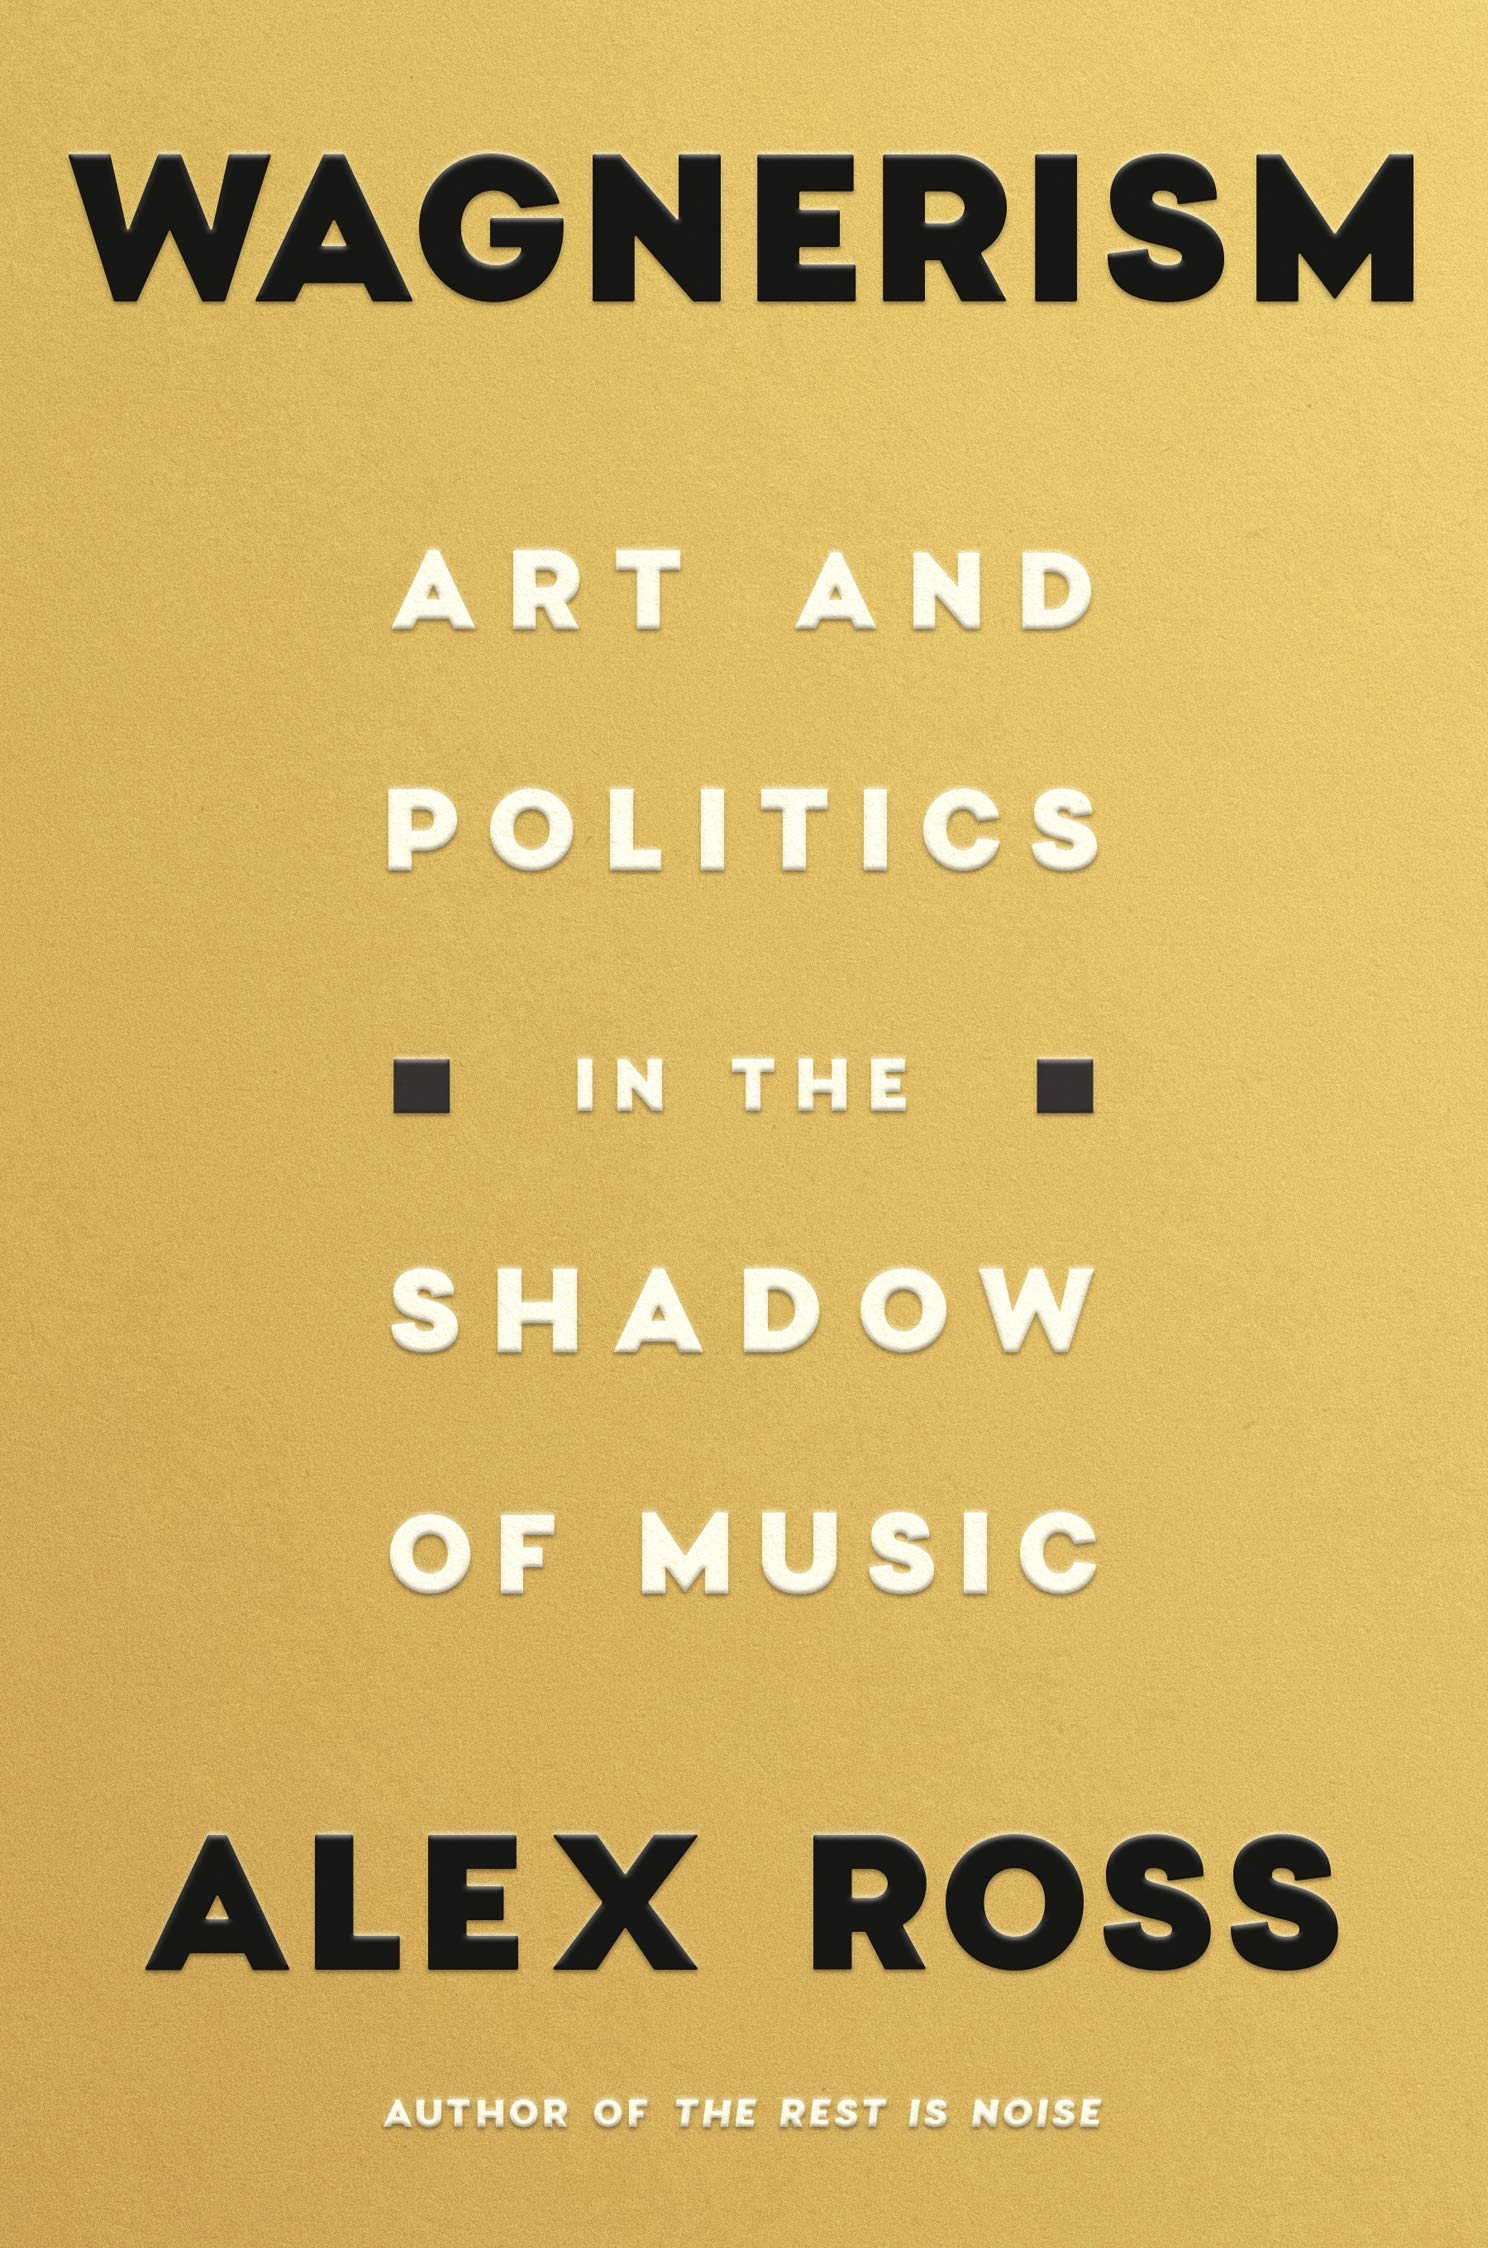 Wagnerism: Art and Politics in the Shadow of Music: Ross, Alex: 9780374285937: Amazon.com: Books